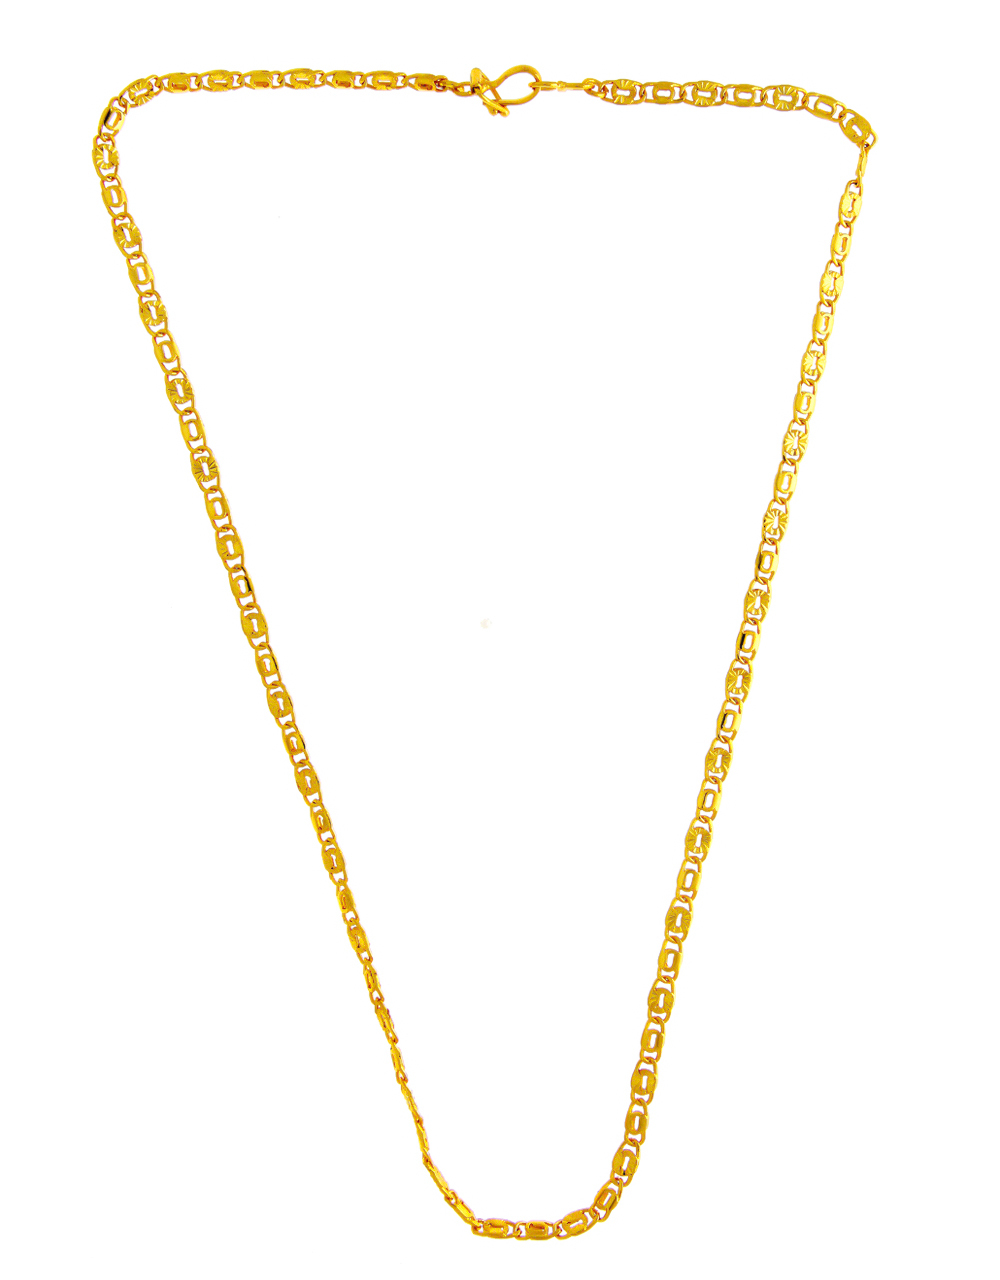 Fashionable Gold Finish Adorable Chain For Men